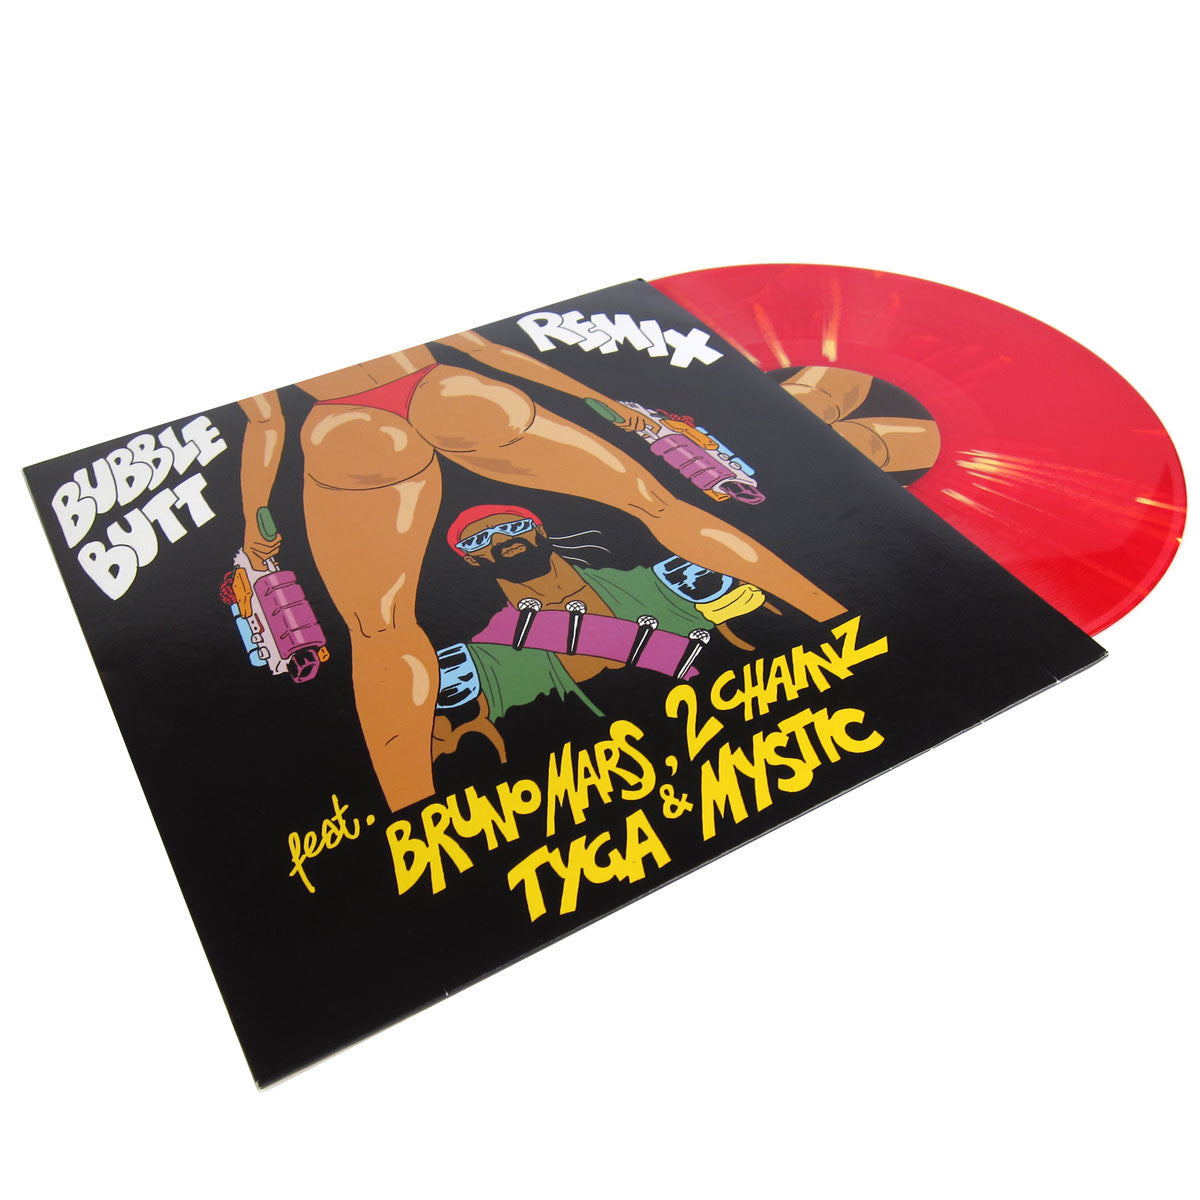 Major Lazer: Bubble Butt Remix (Bruno Mars, 2 Chainz, Tyga, Mystic)  12""